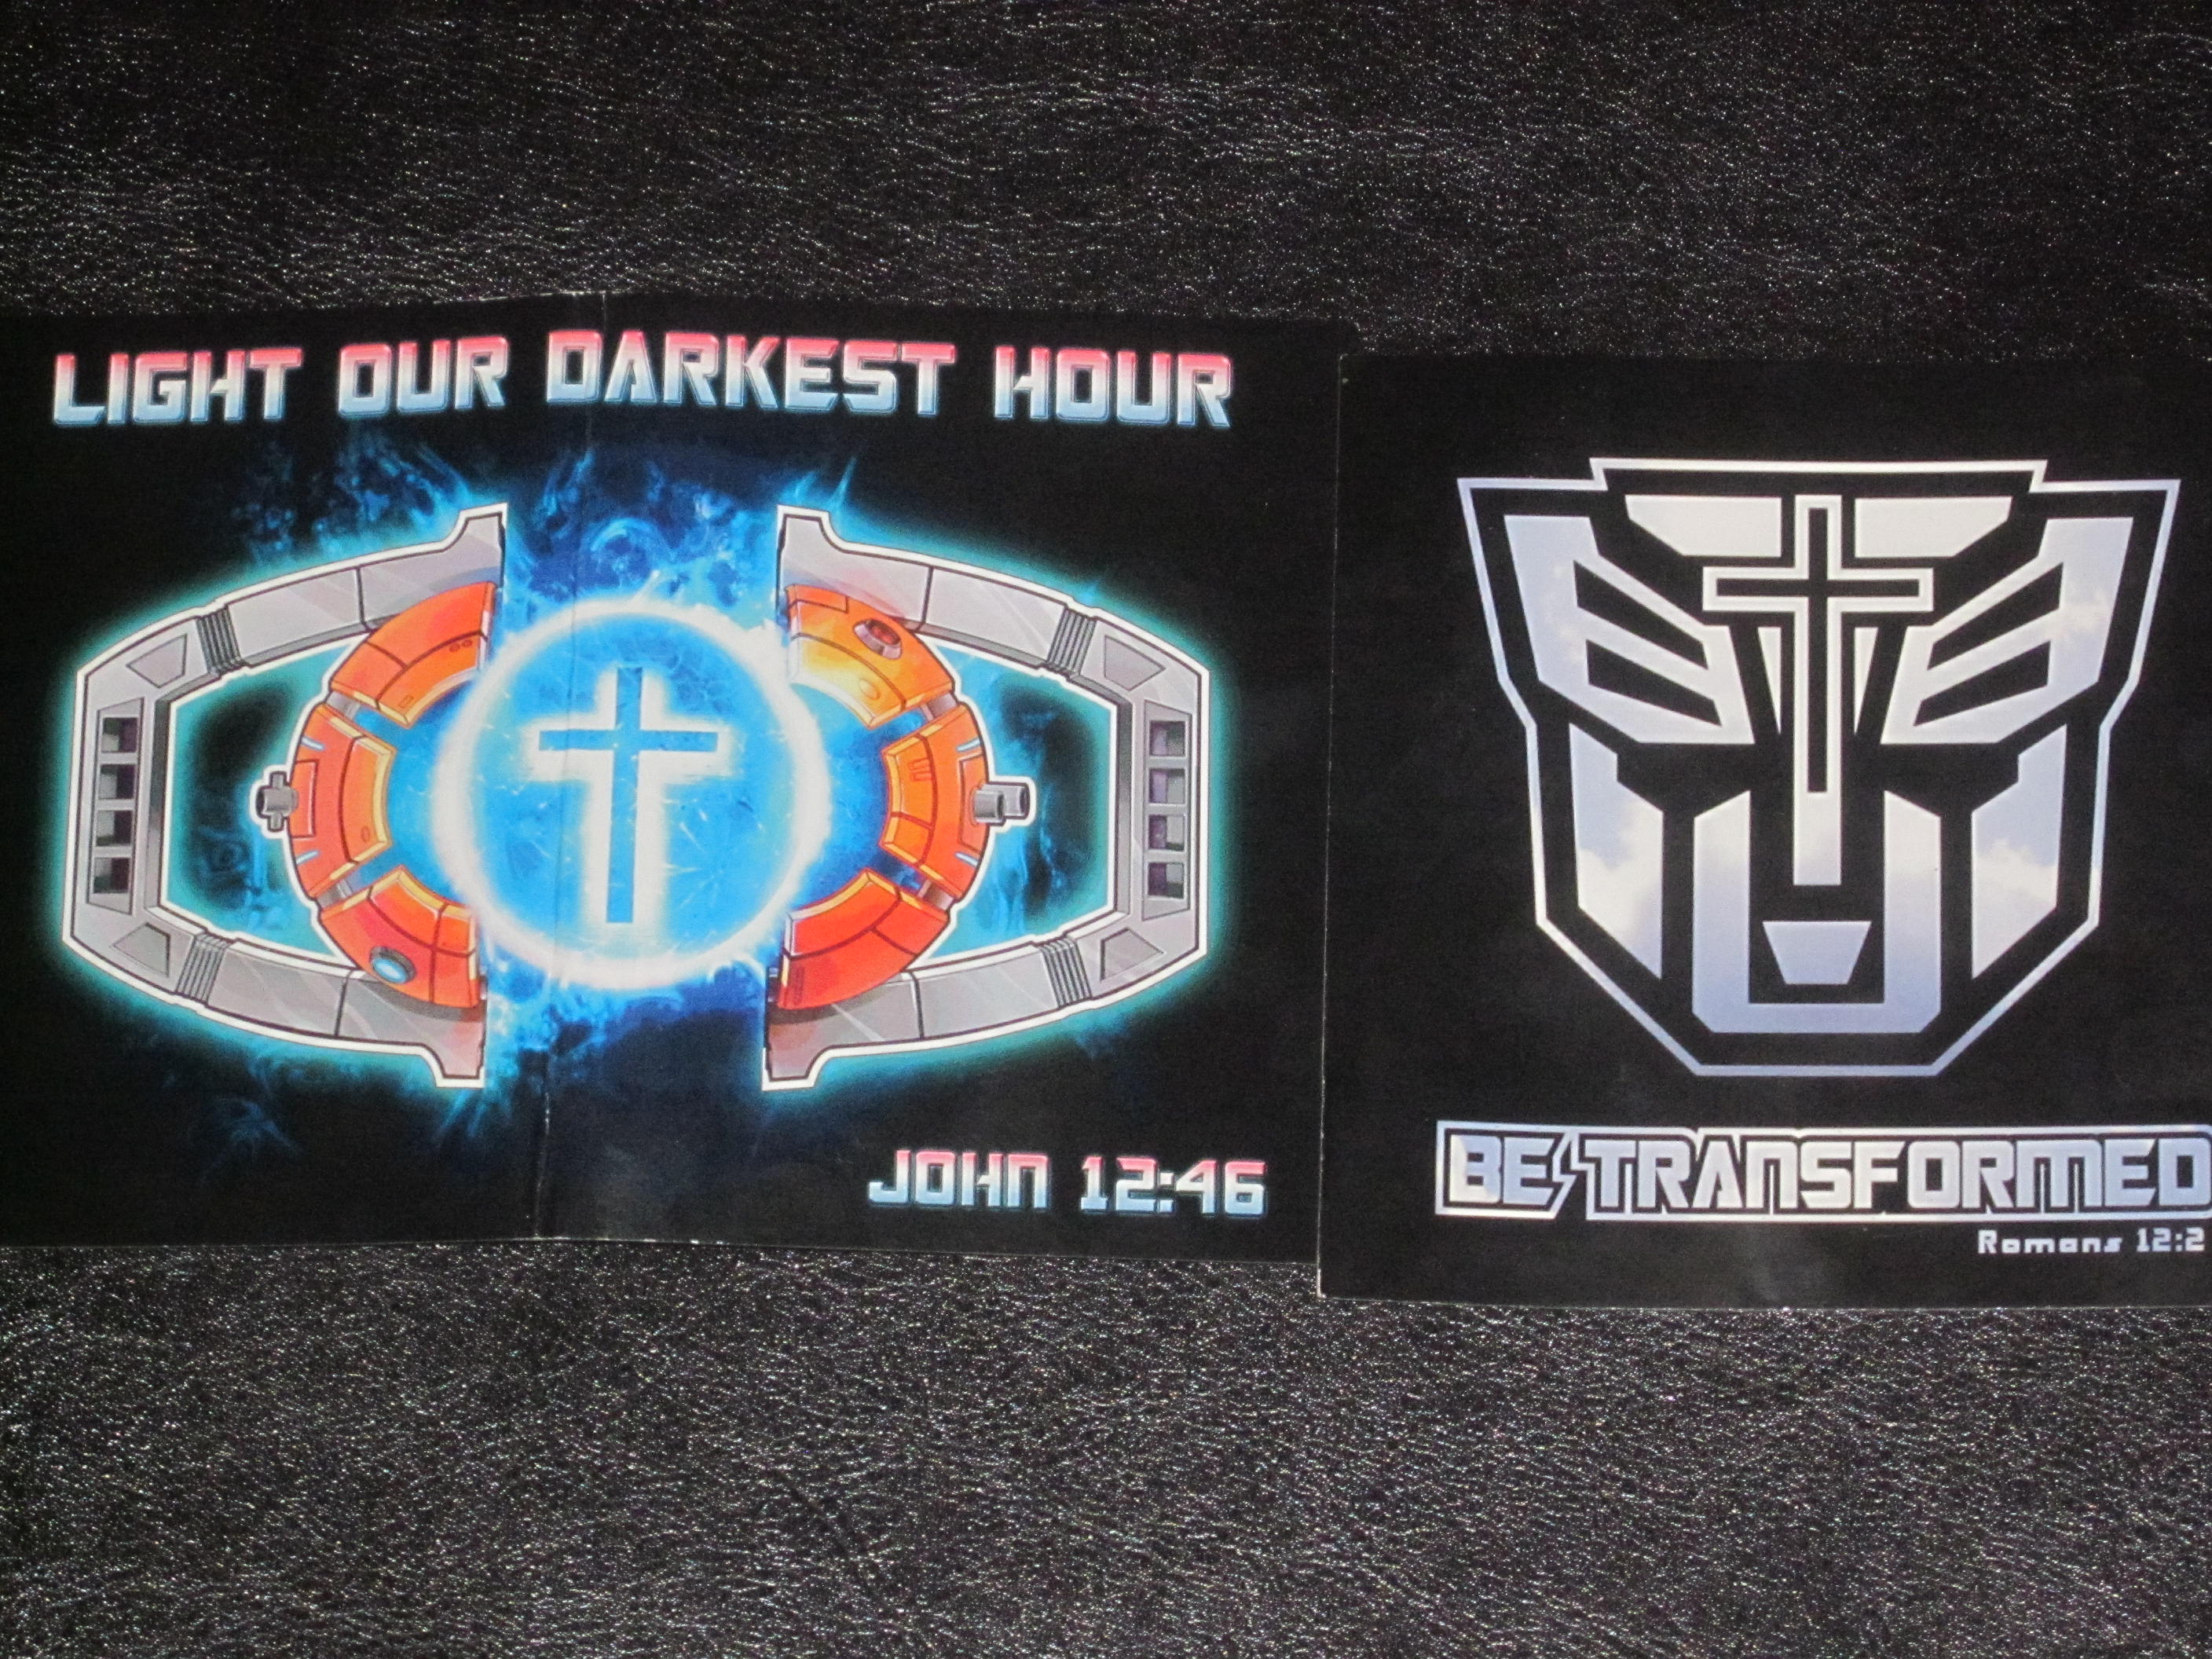 Transformers Gets Hijacked By Christians Dangerous Talk